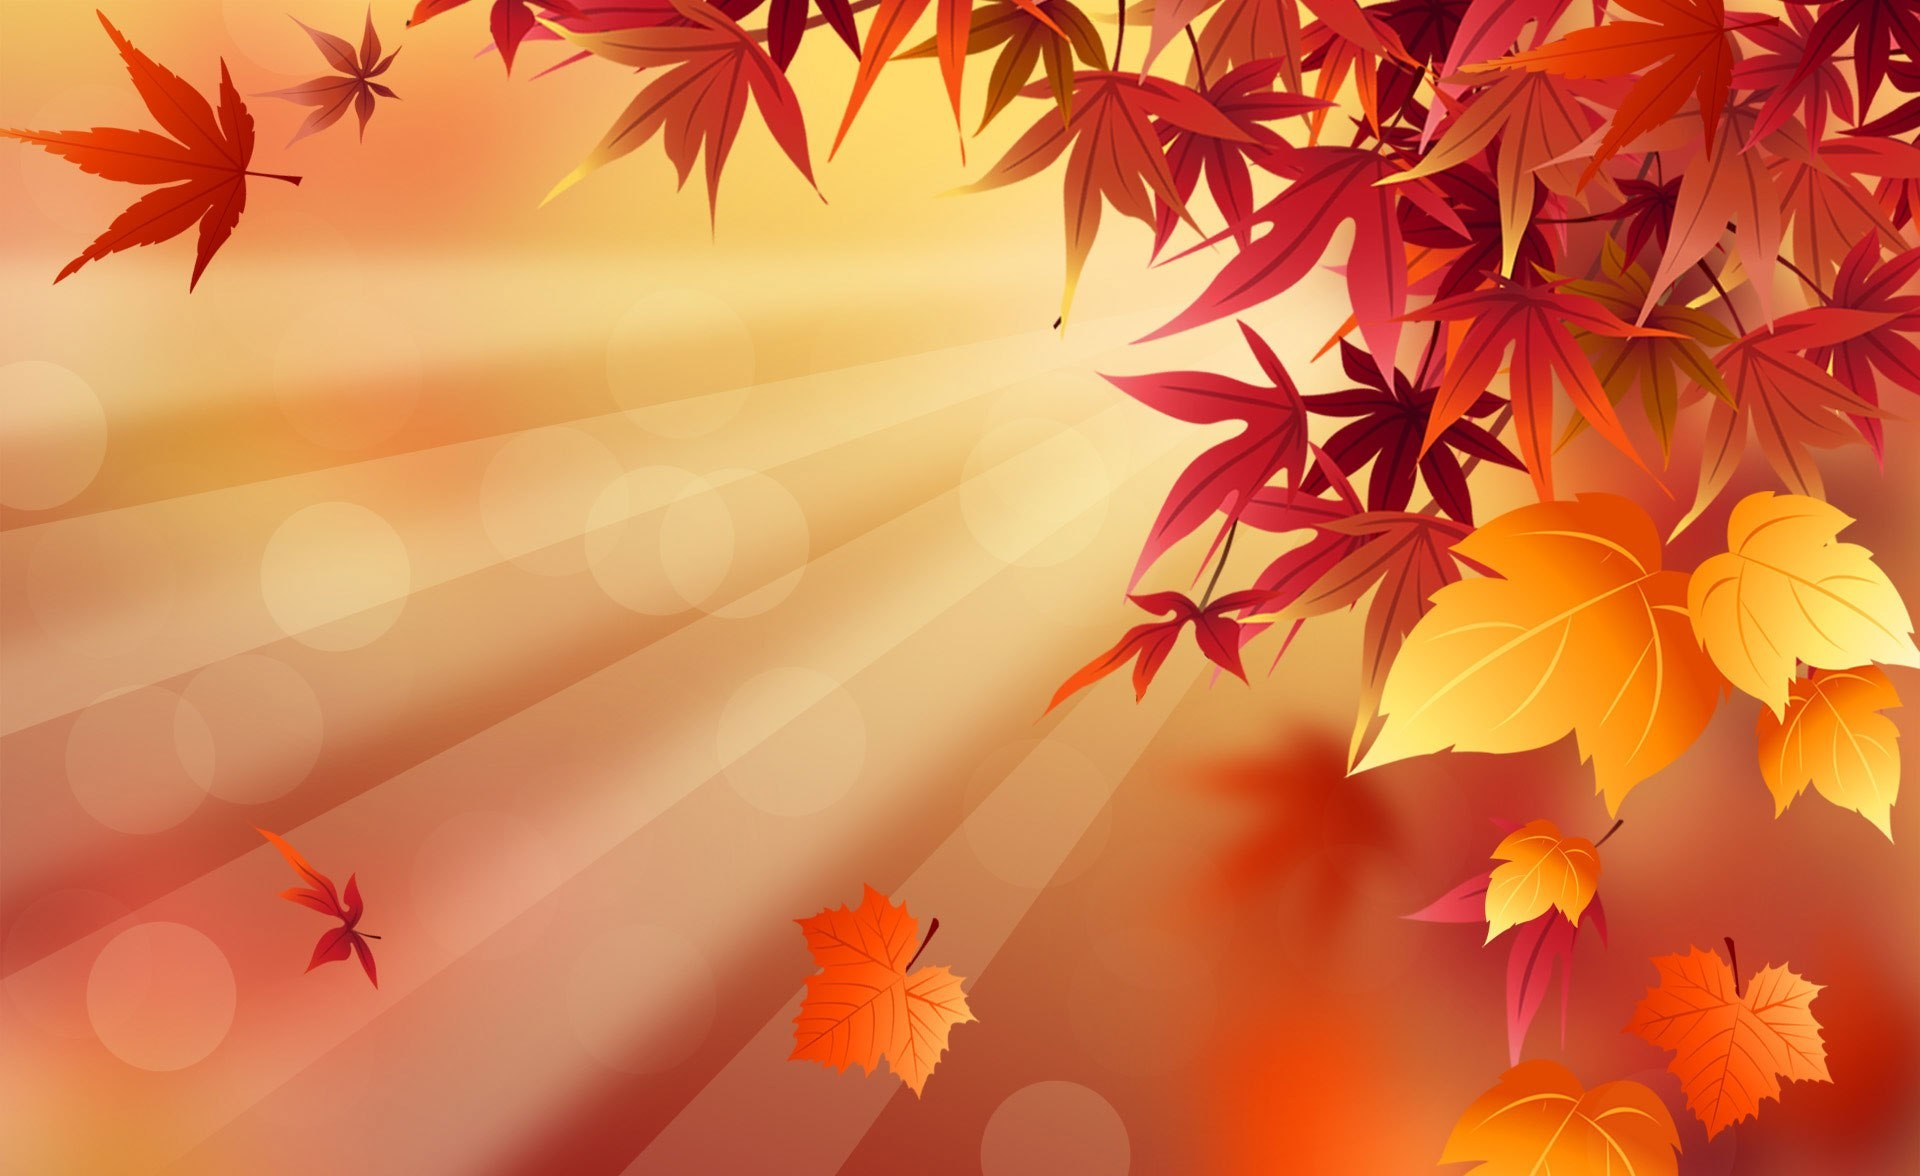 1920x1176 46 Free Fall Wallpapers and Backgrounds: Fall Wallpaper by Jpquidores